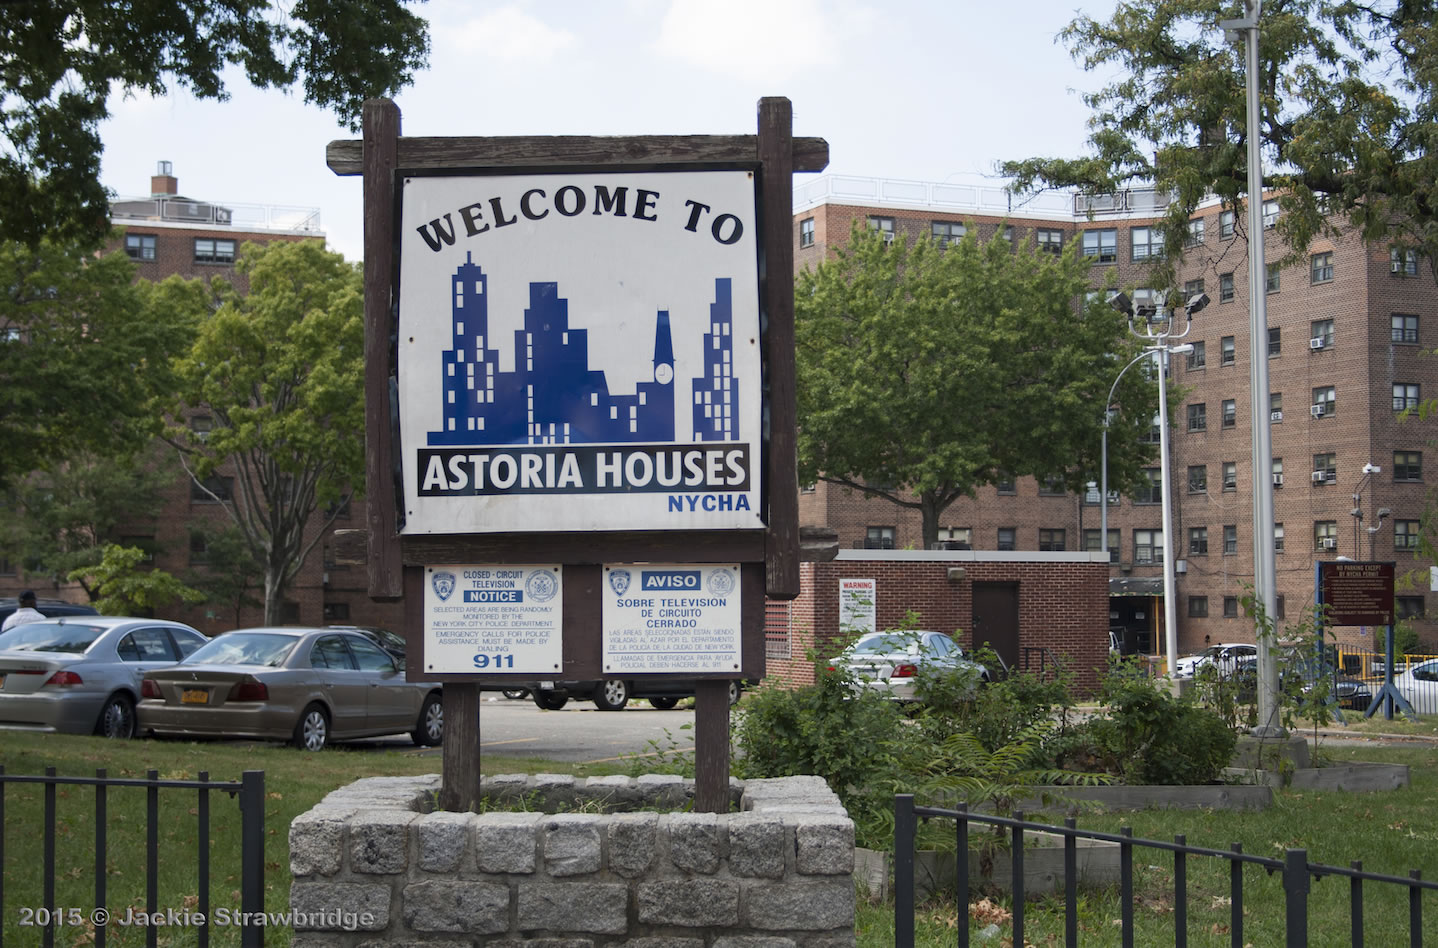 New Generators for Astoria Houses